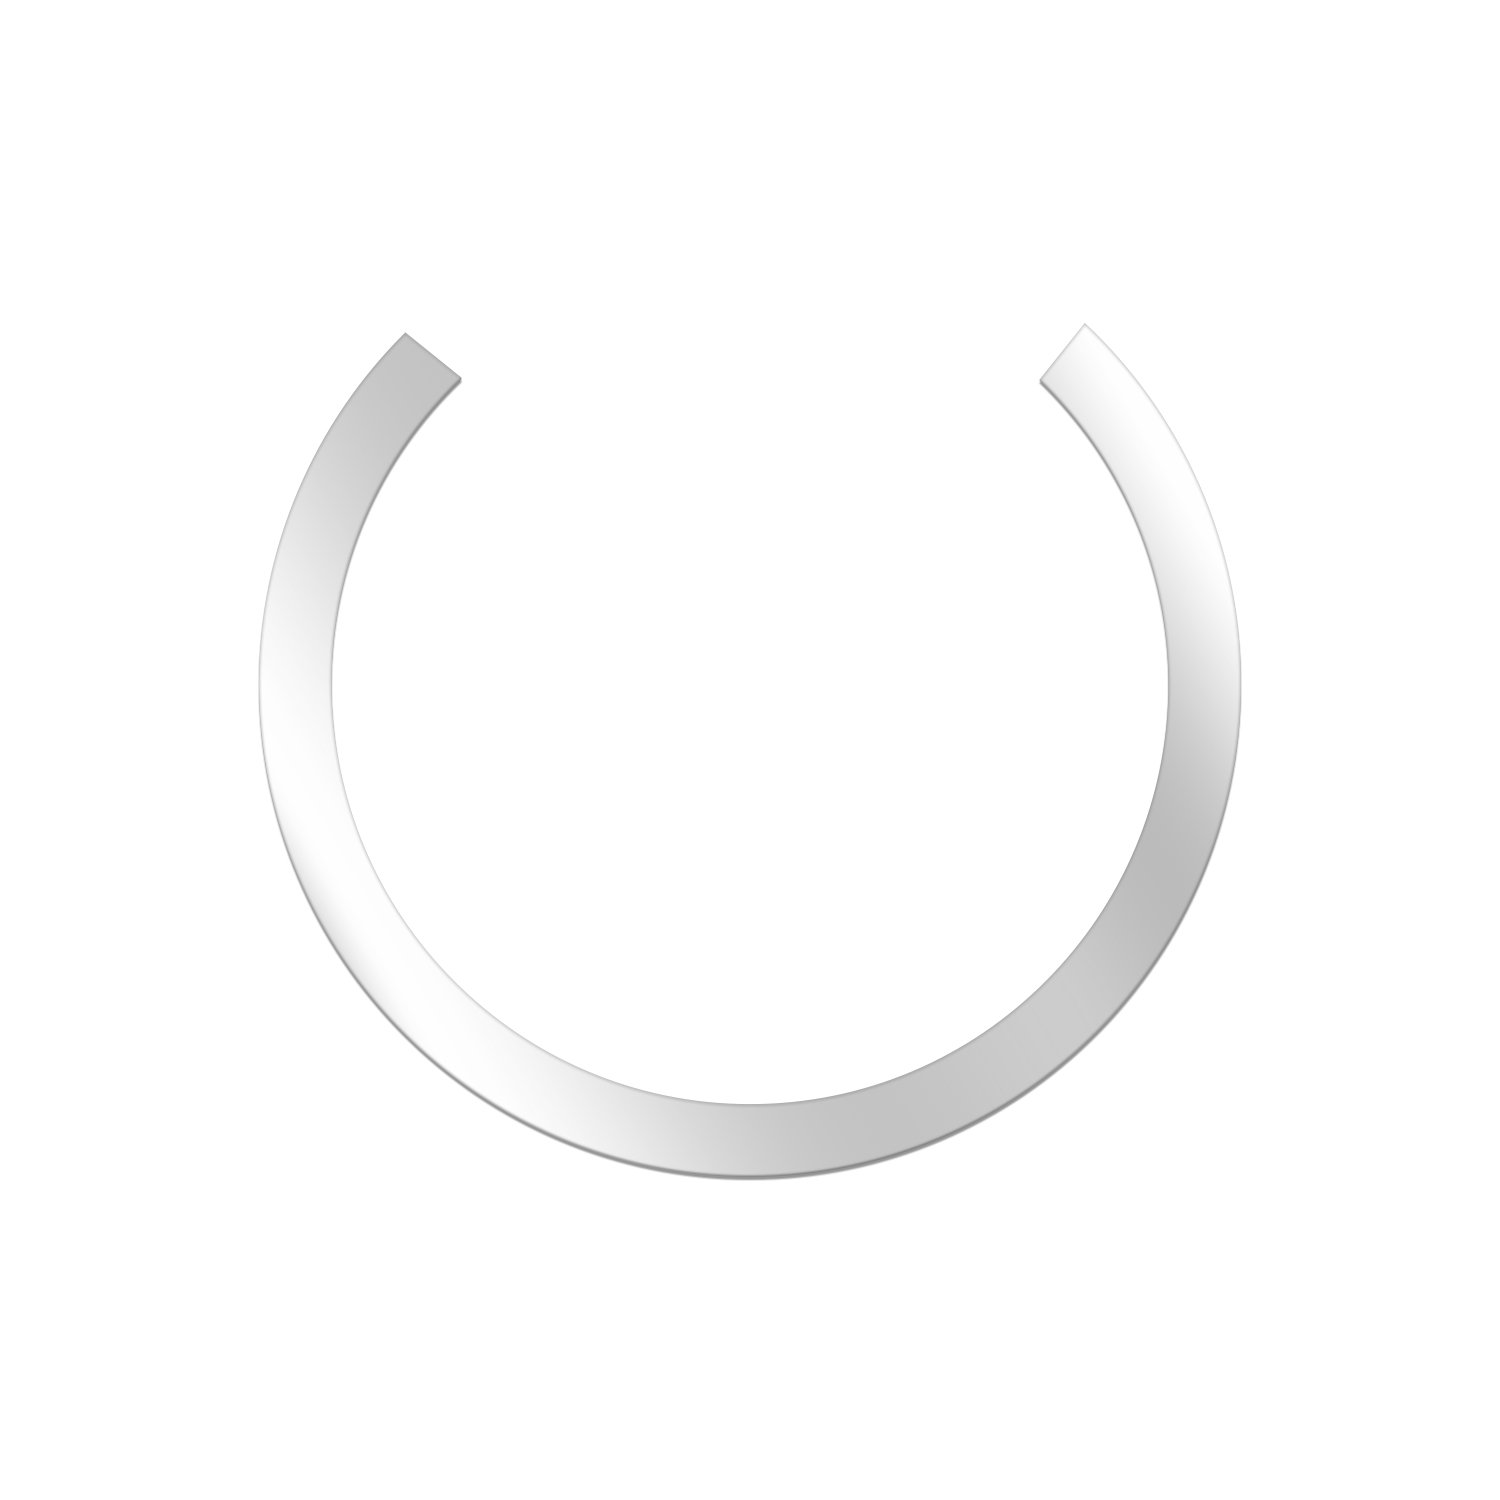 5 pcs Metal Ring for Magnetic Qi Wireless Charger 60.8MM//2.39inch Round Ring for TankShip Magnetic Wireless Car Charger Car Mount Phone Holder Qi Standard Mobile Cell Phone Apple Special